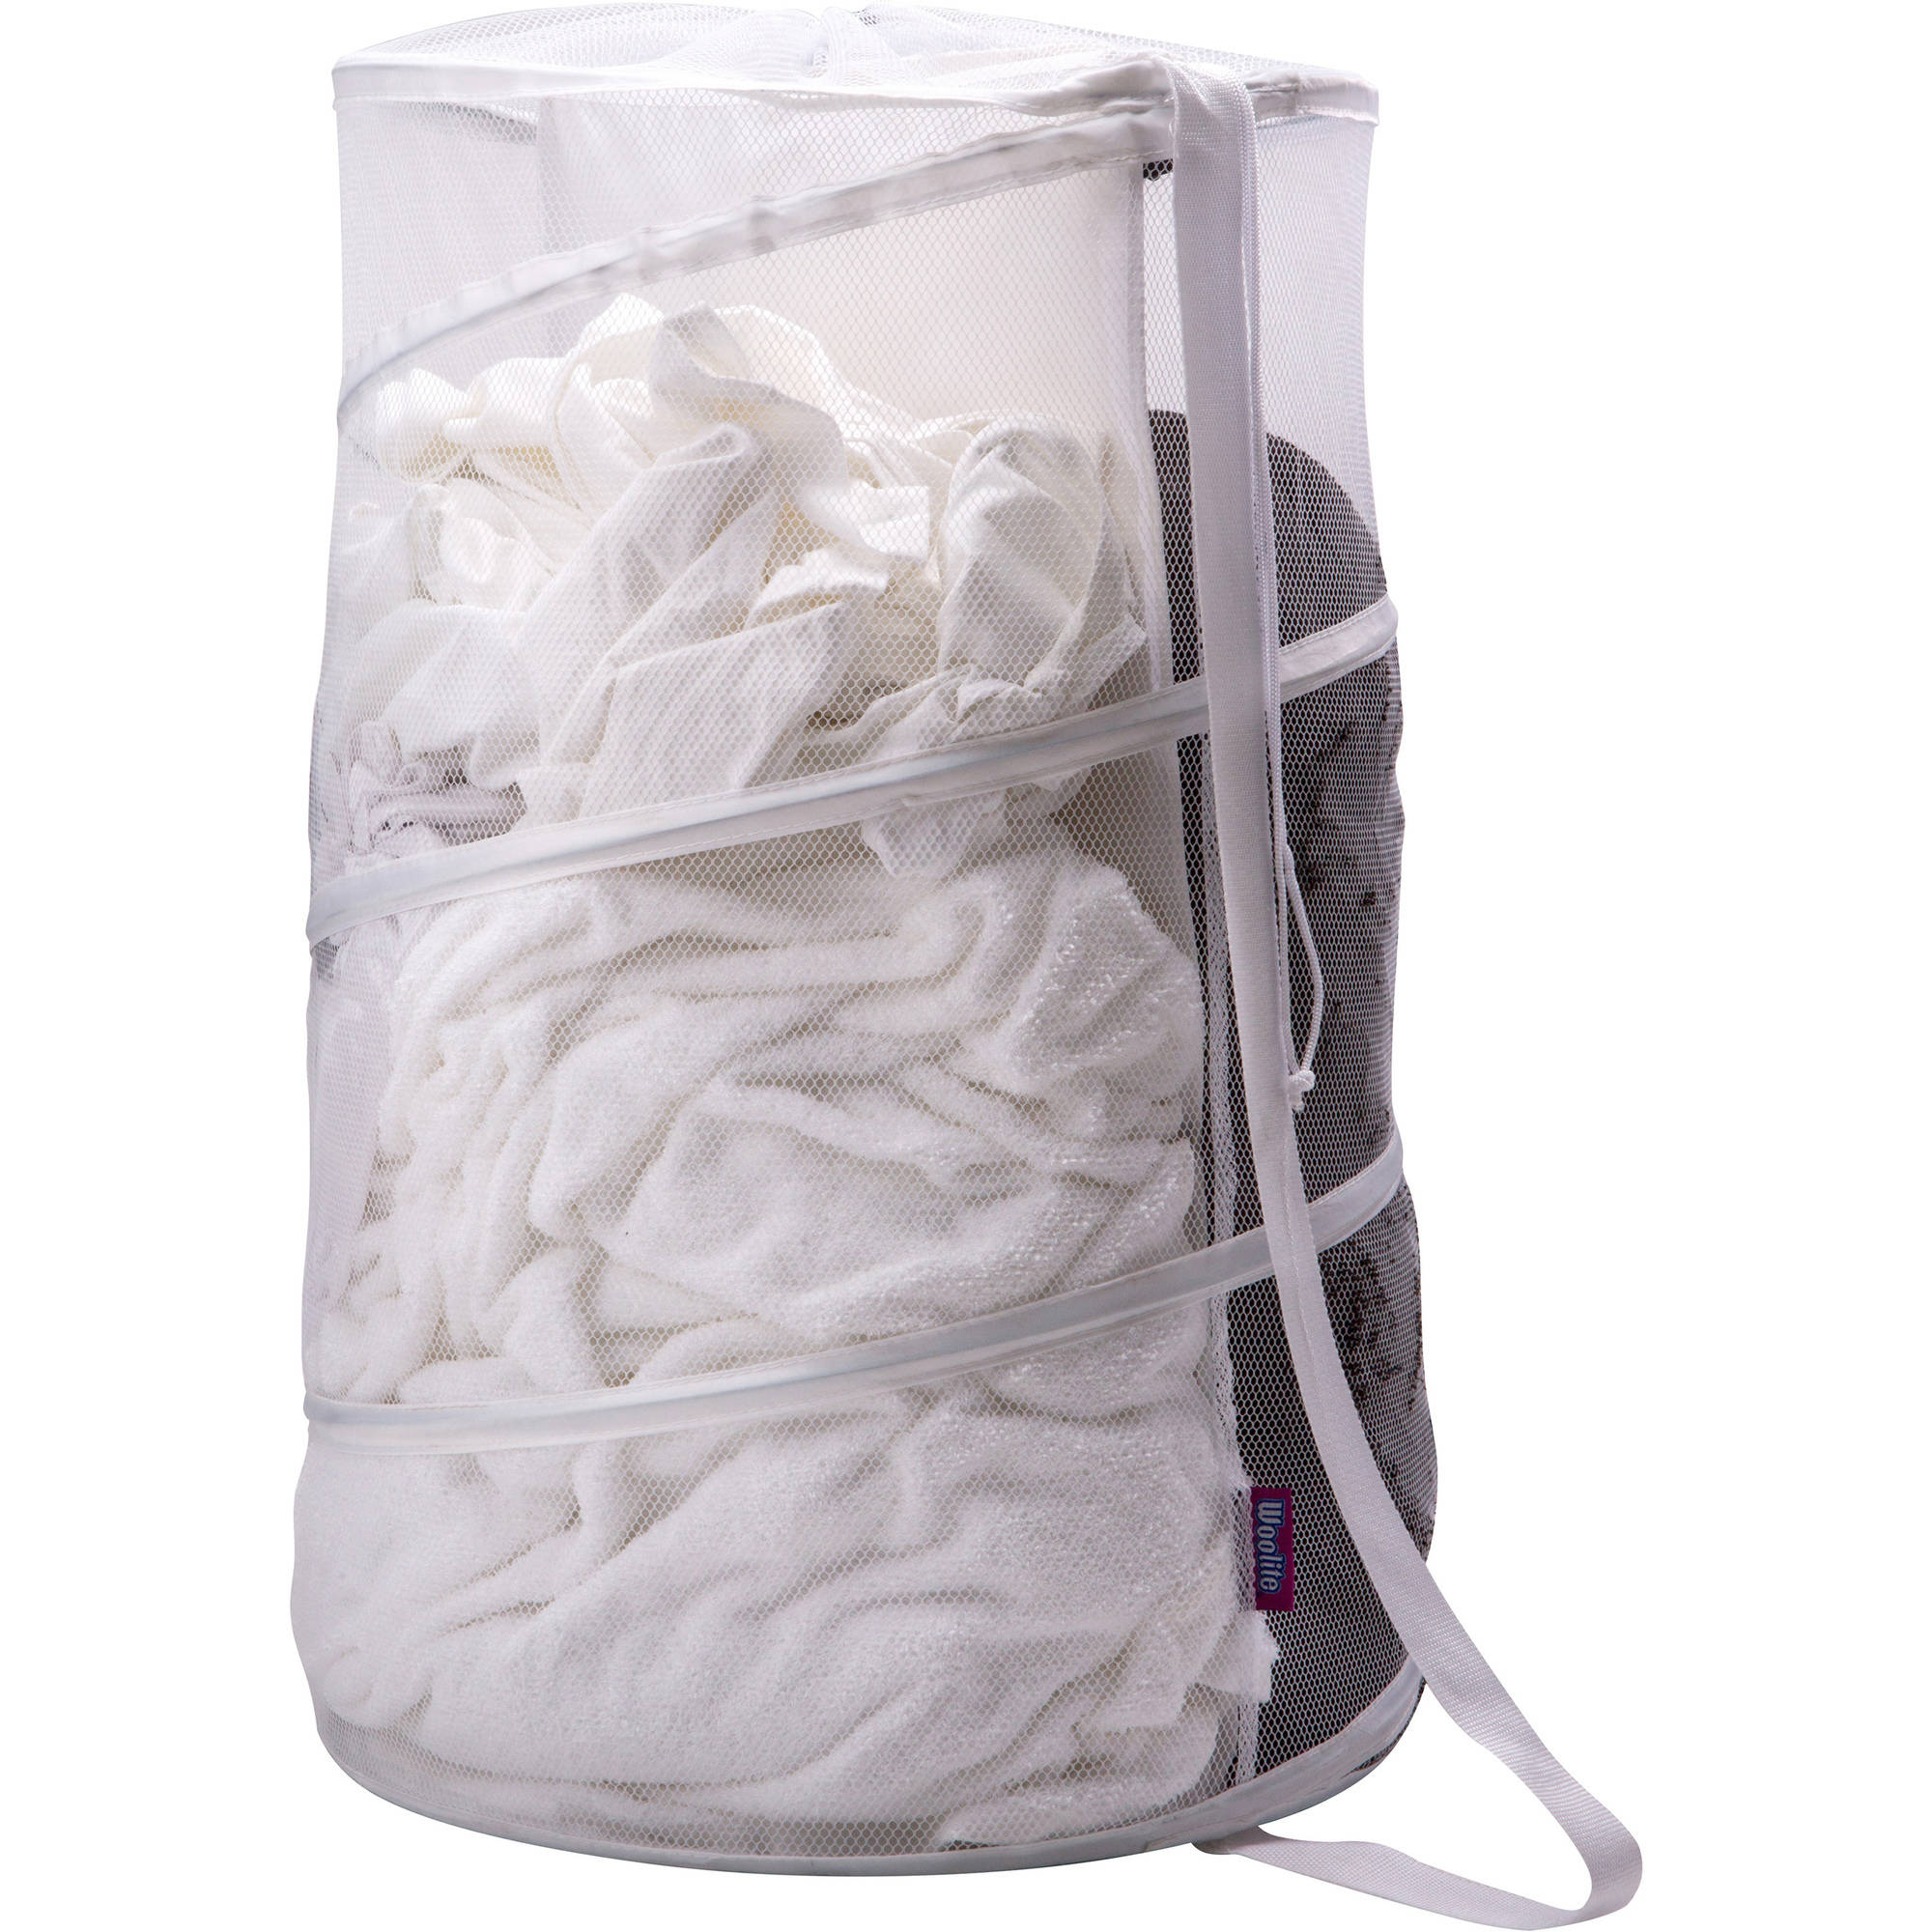 Woolite Sanitized Large Mesh Pop-Up Hamper with Divider